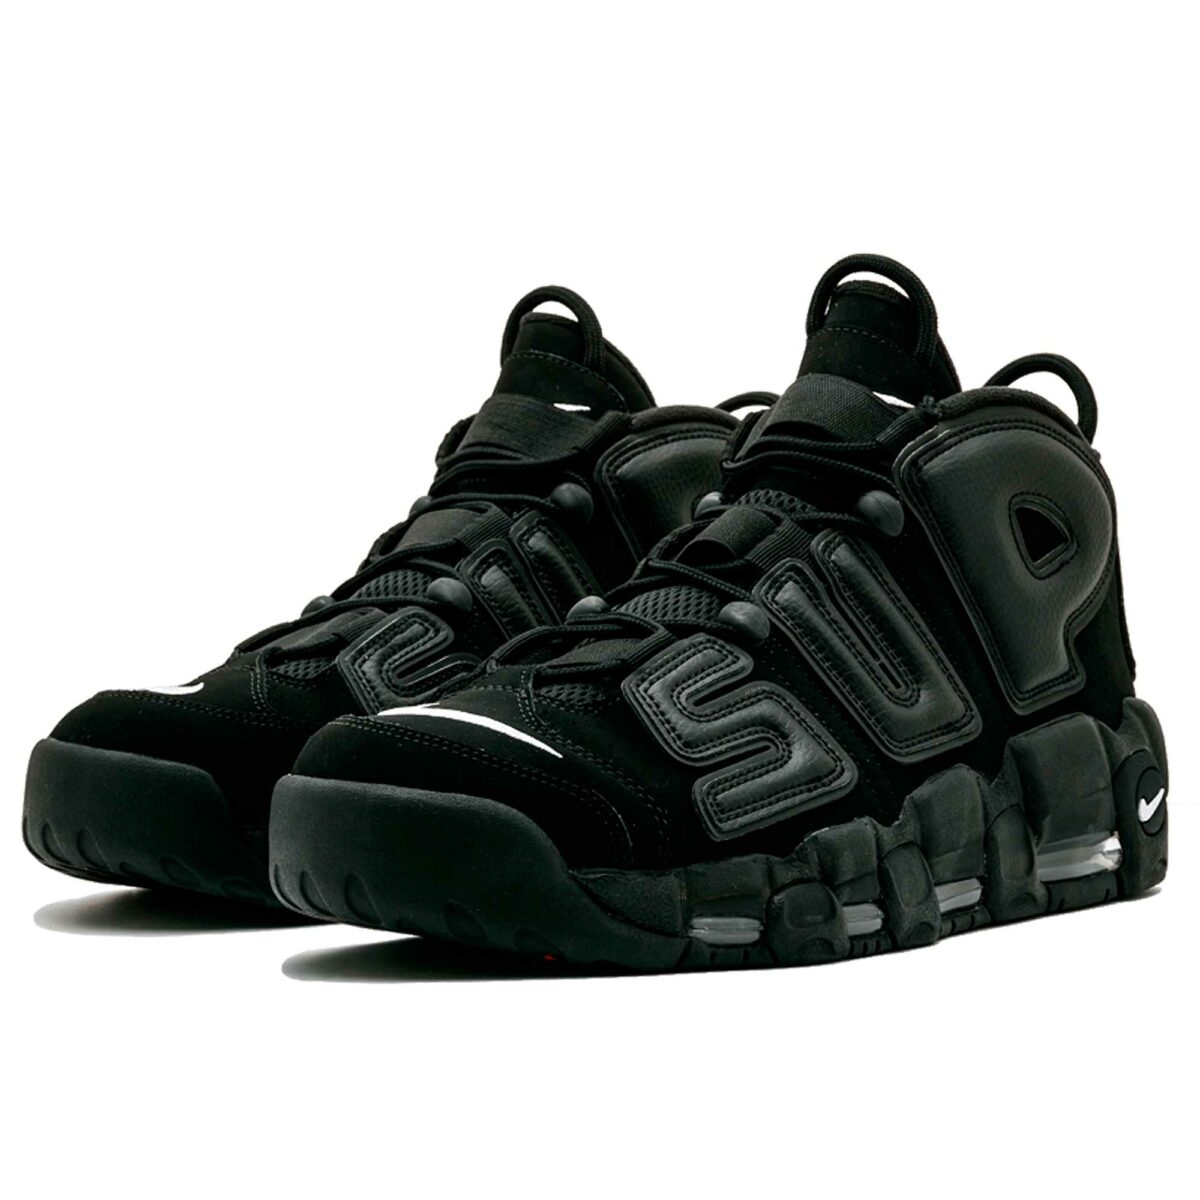 nike air more uptempo supreme all black 902290-001 купить